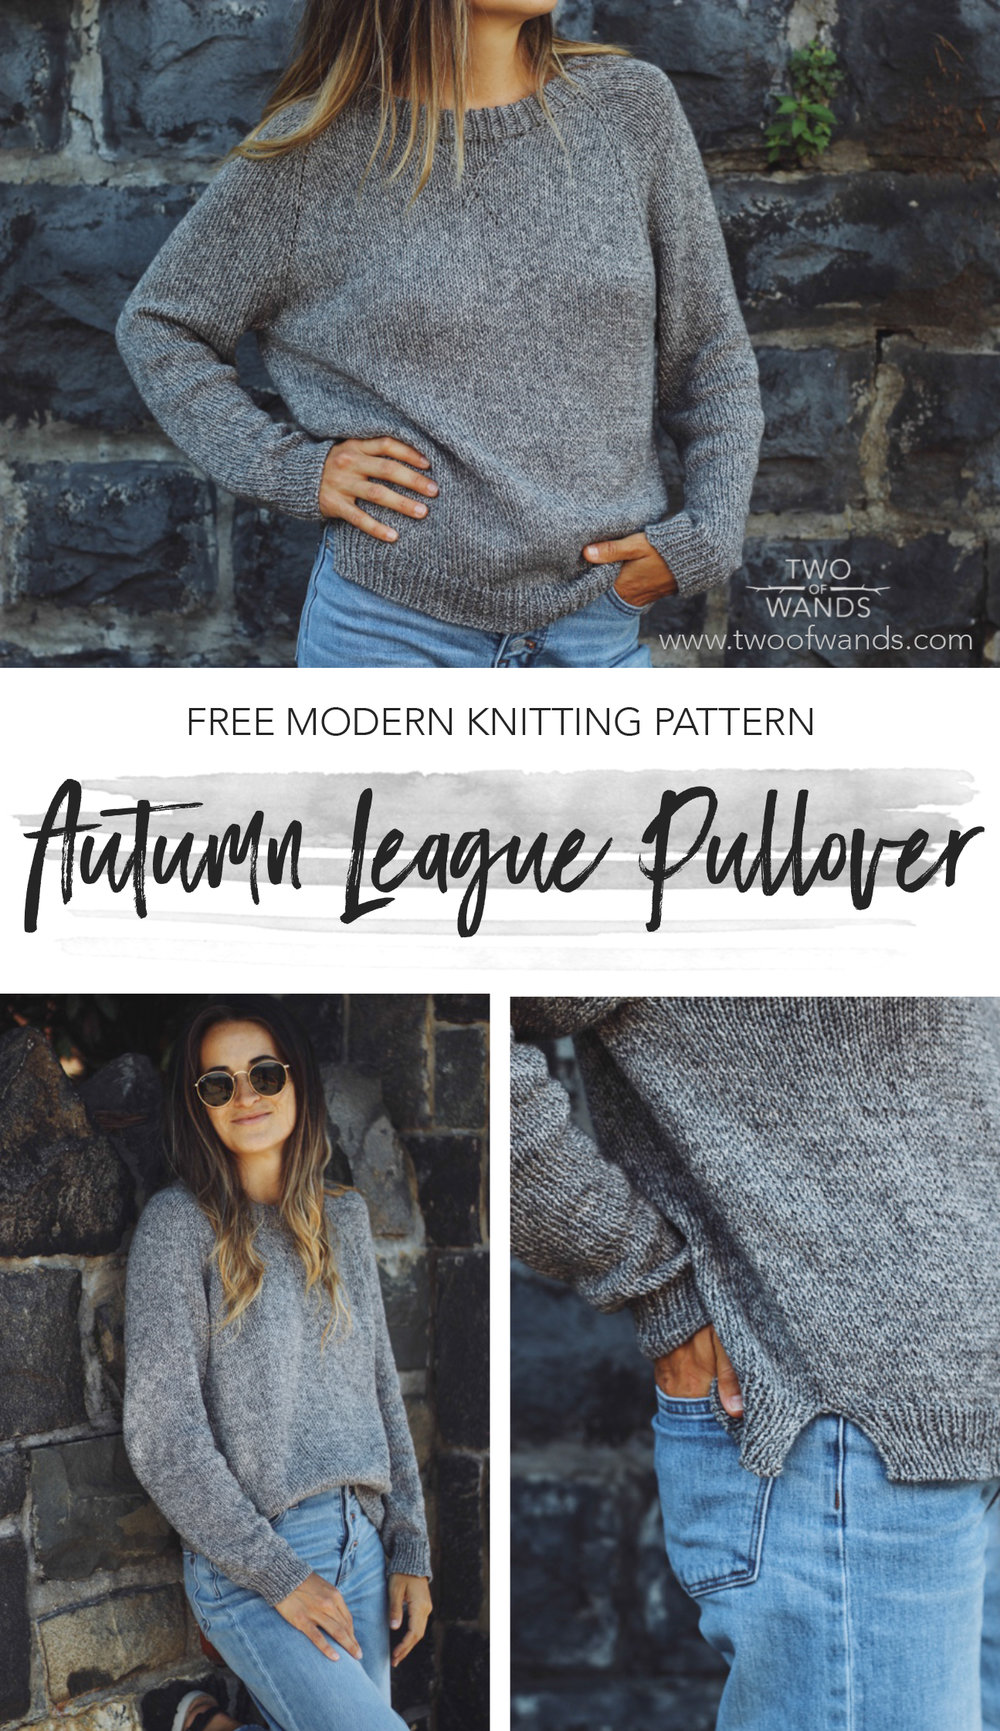 5538cd225b7c6c Autumn League Pullover pattern by Two of Wands